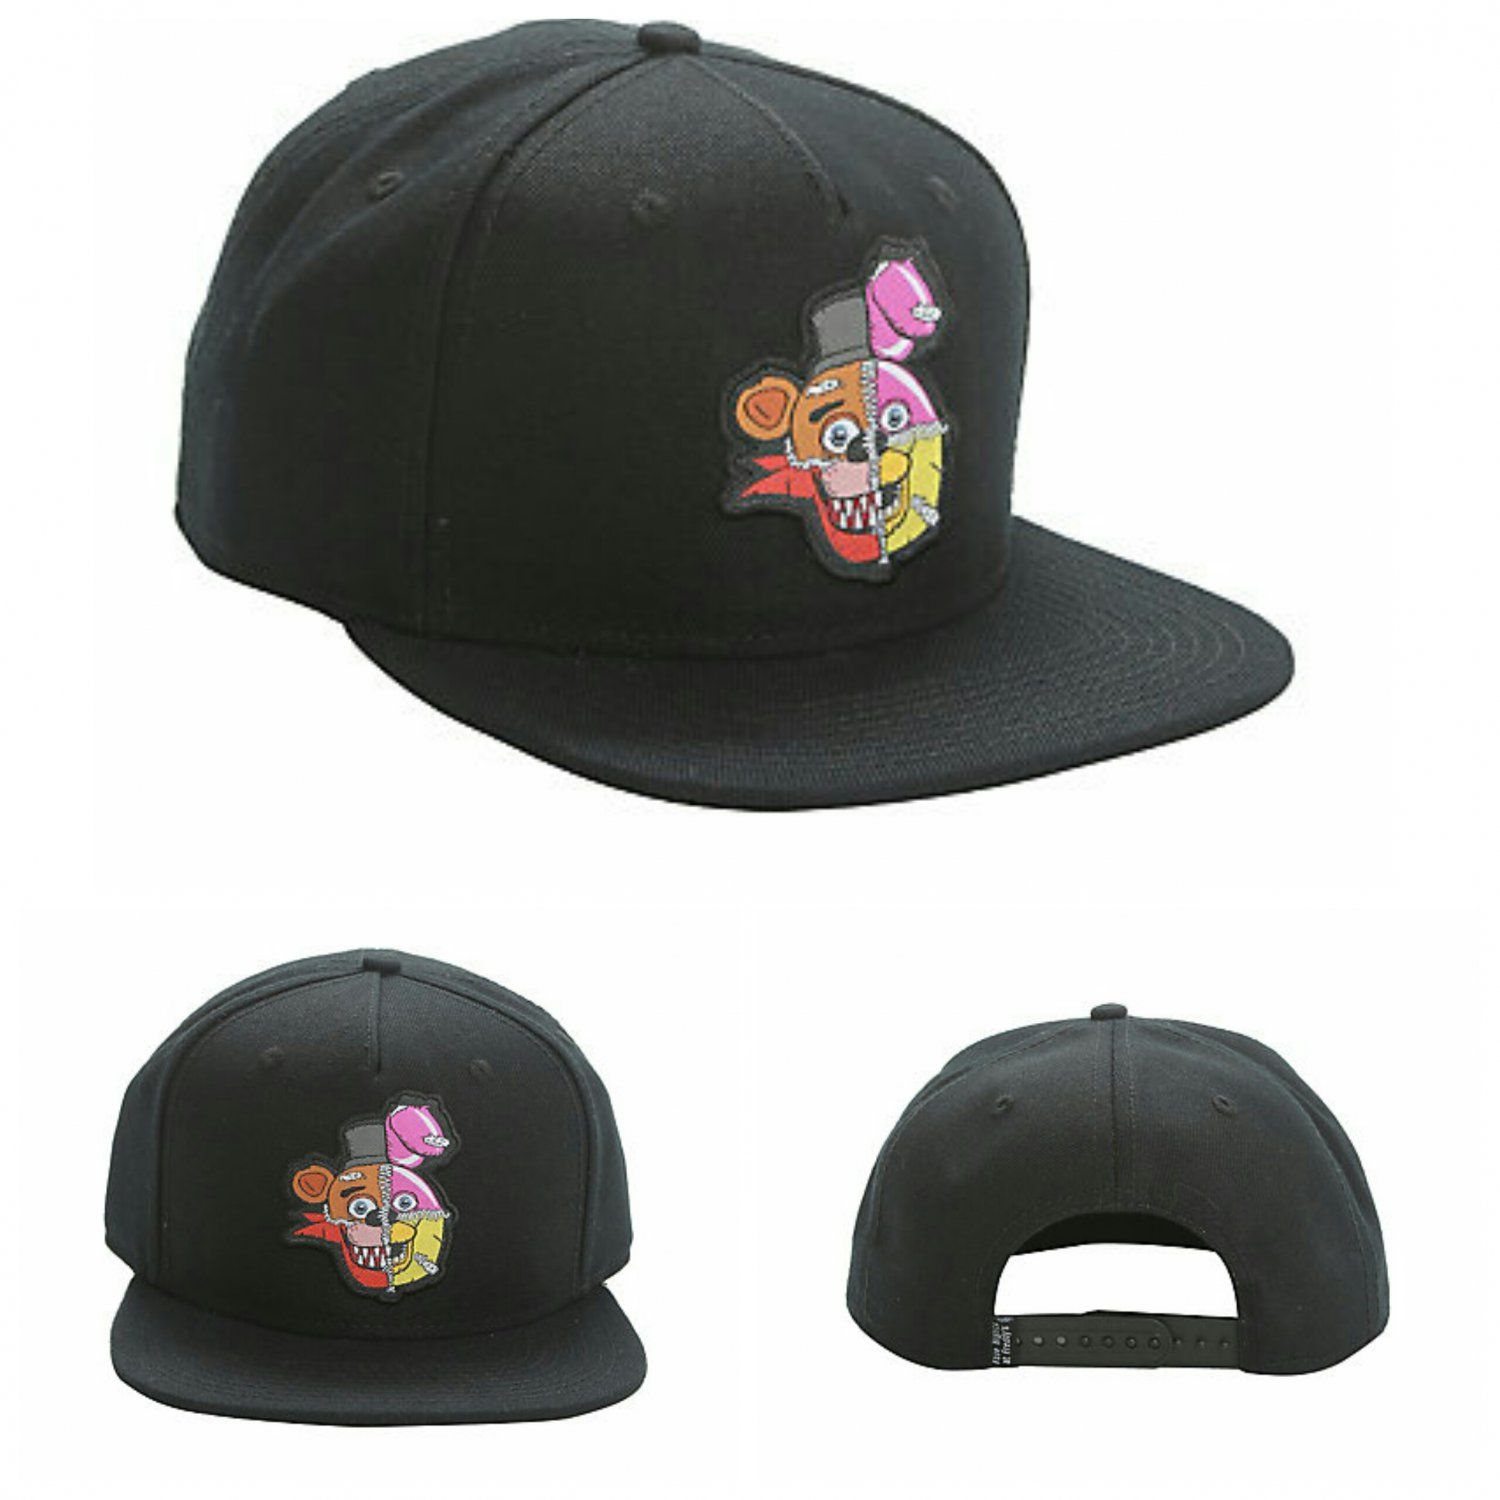 size 40 4e886 8b4a8 Five Nights At Freddy s   FANF Stitched Character s Adjustable Black Snapback  Hat Cap by Bioworld - Hot Topic Exclusive (Freddy Fazbear, Bonnie, Chica,  ...